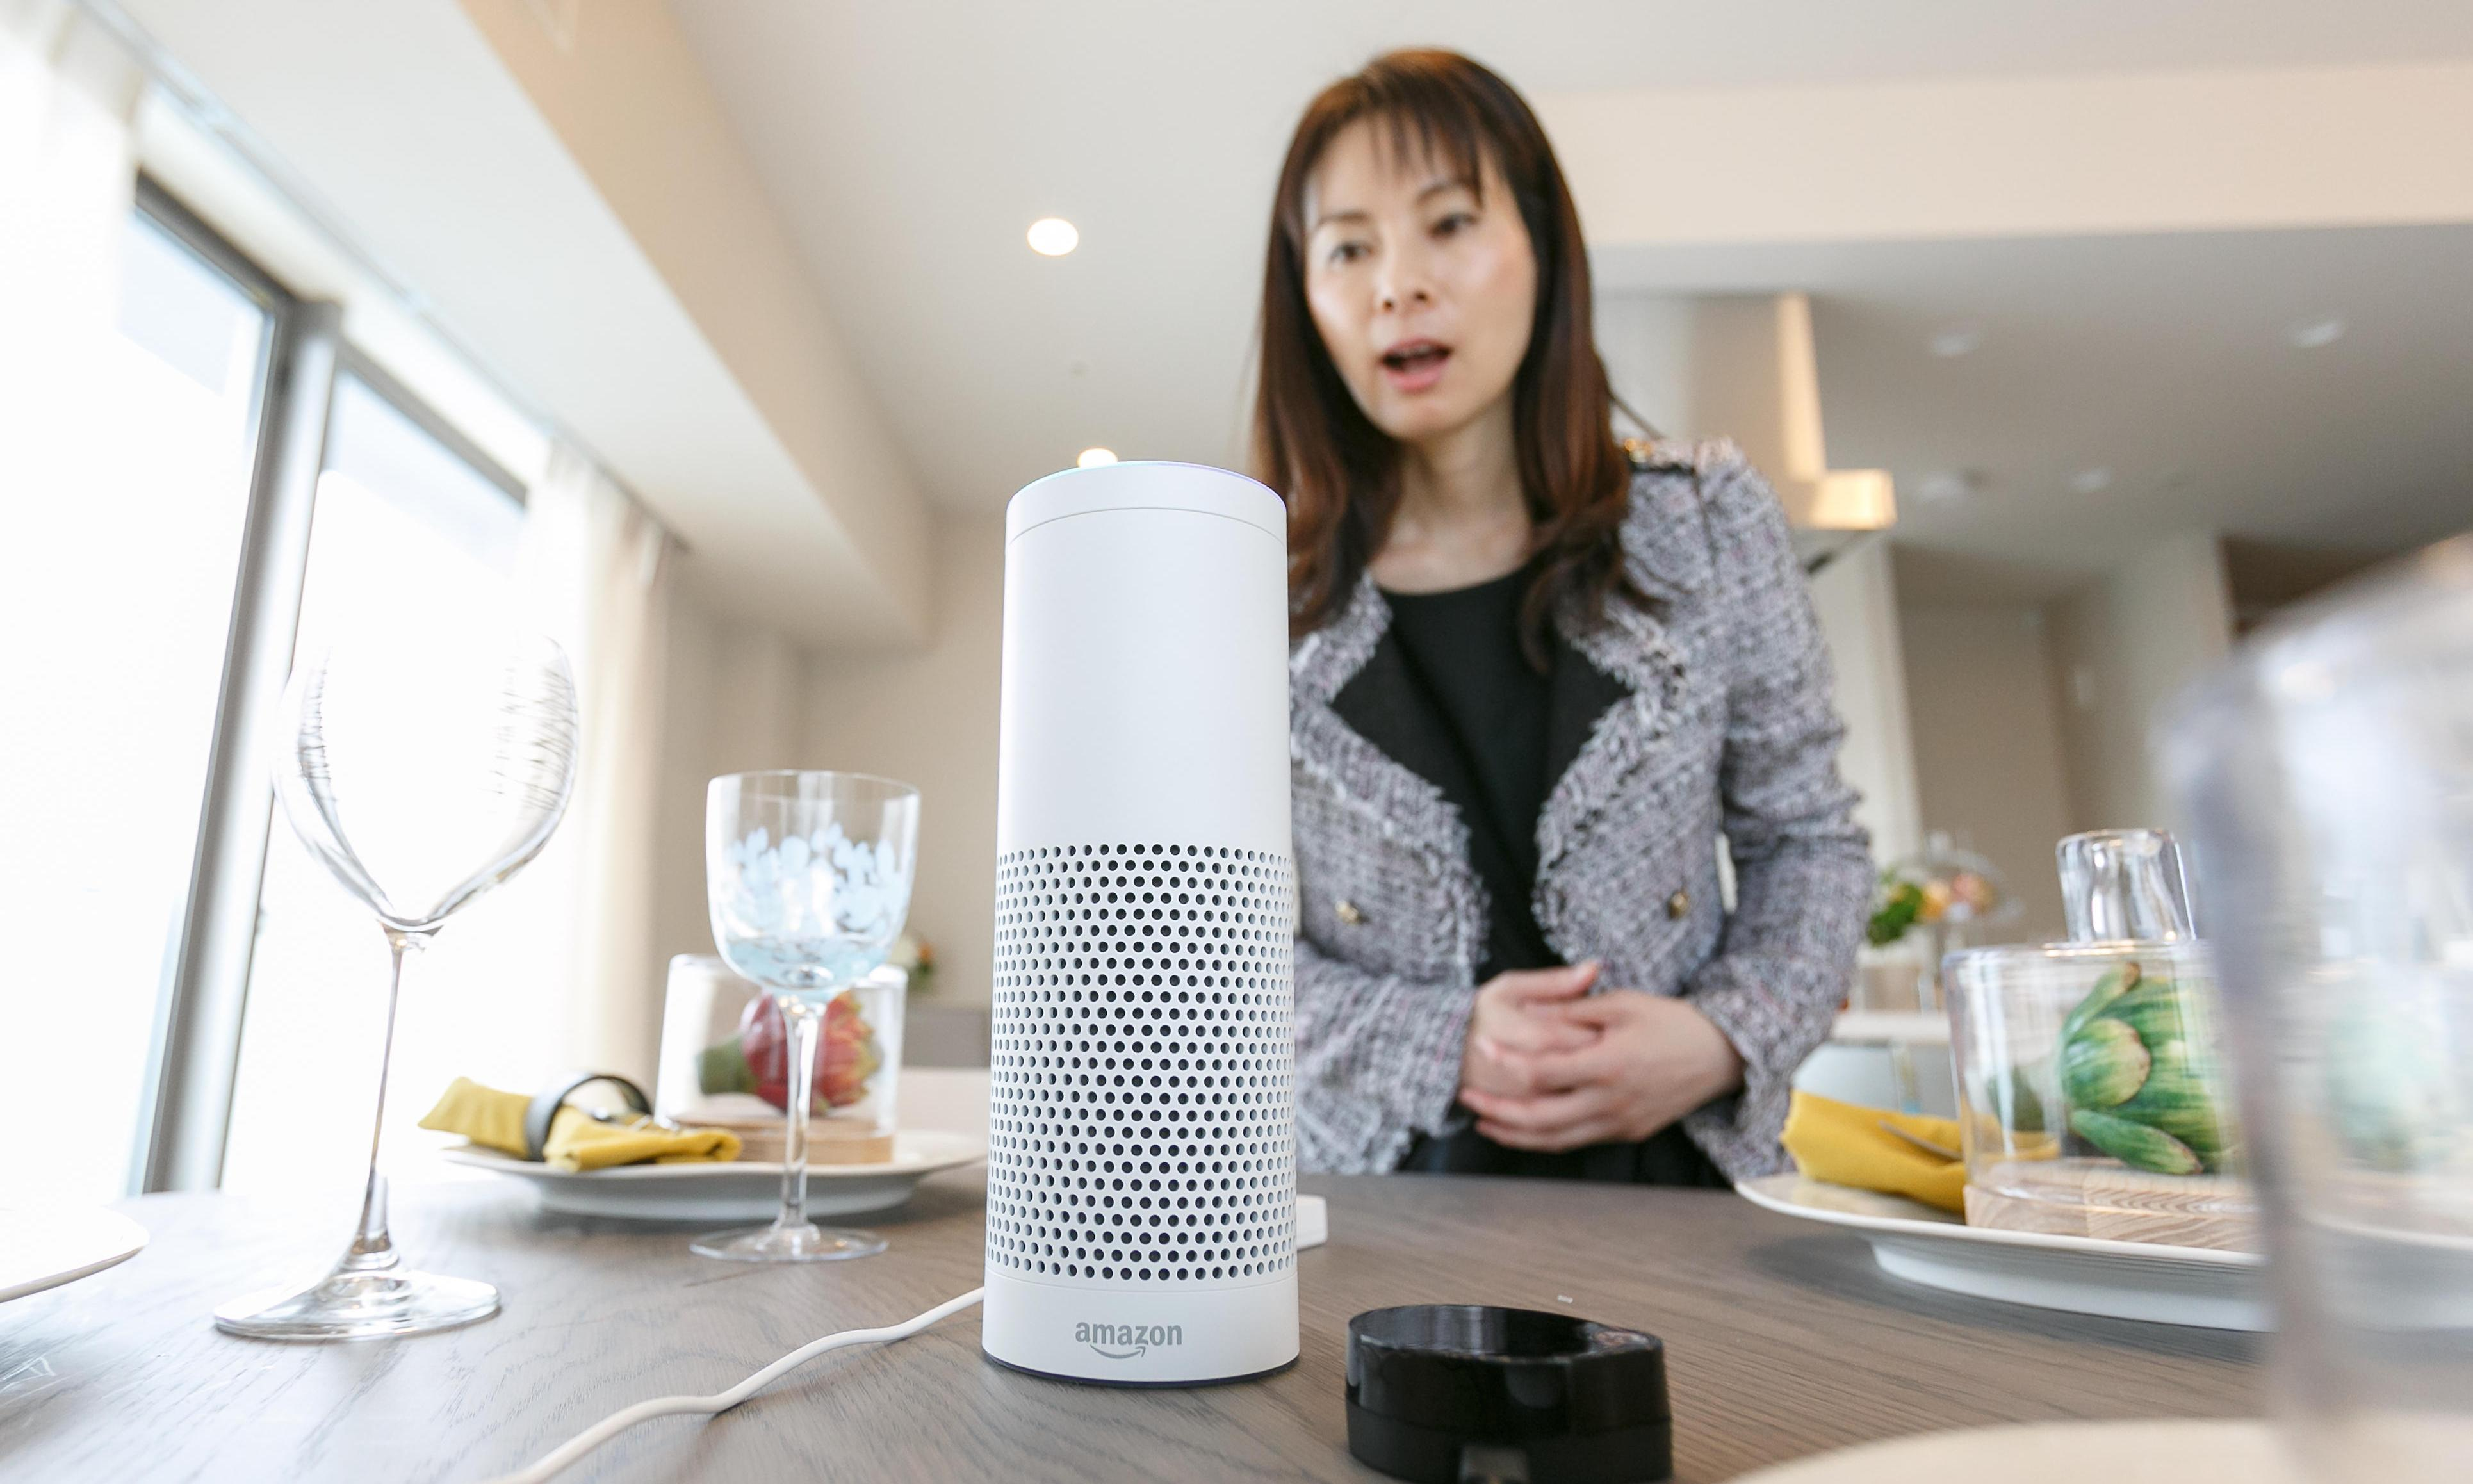 Alexa users can now disable human review of voice recordings